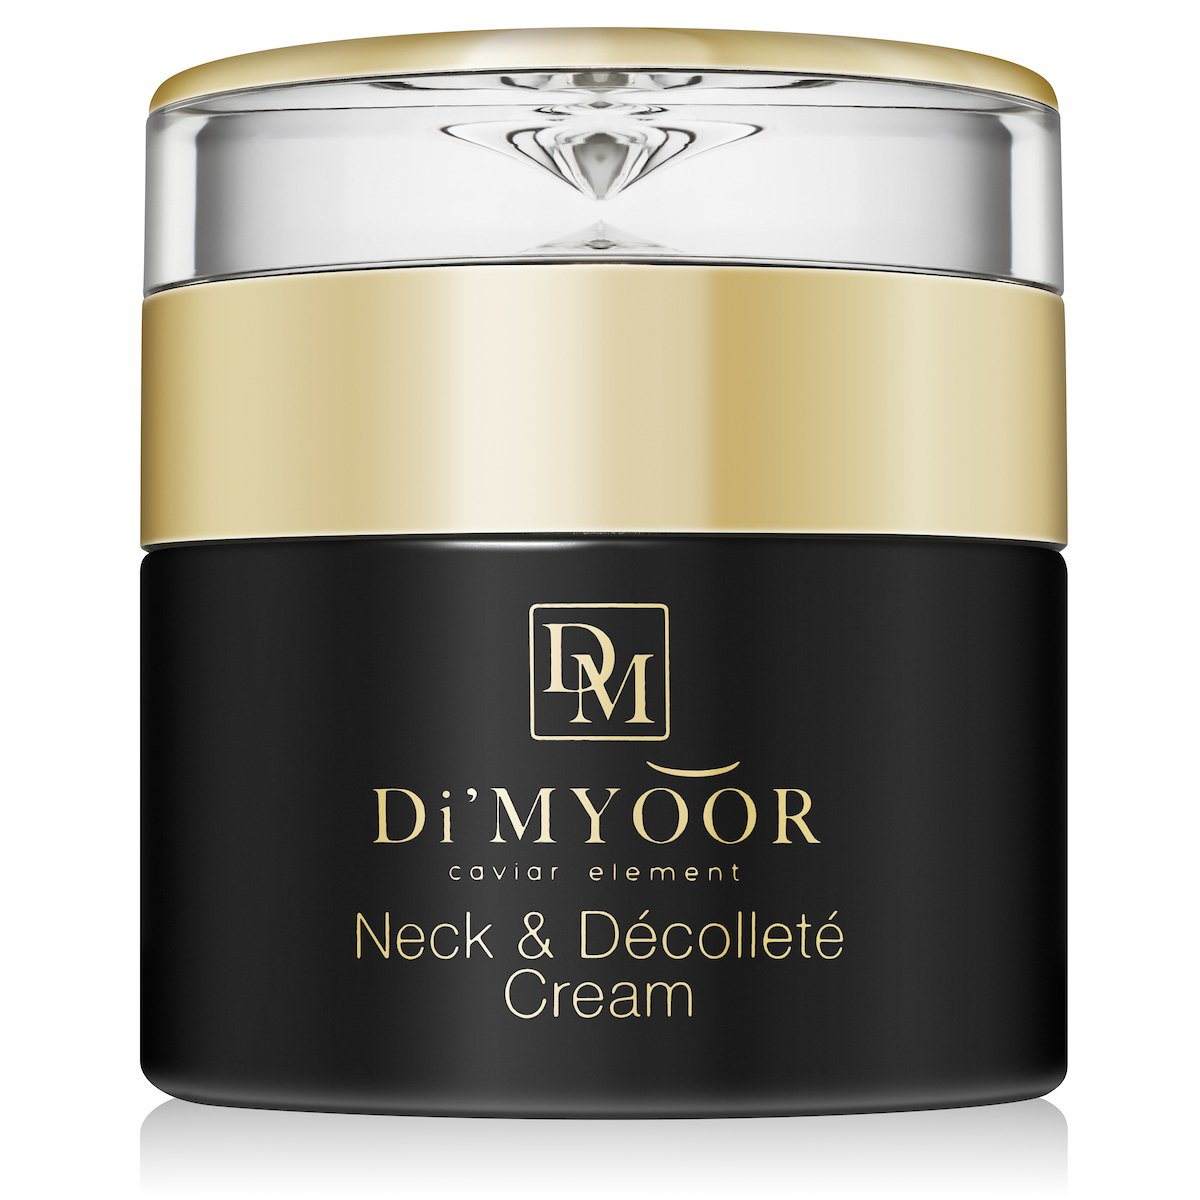 Di'MYOOR Neck & Décolleté Firming Cream with CAVIAR ELEMENT, 3-in-1: Tightens sagging, loose skin, retains youthful glow, enriched with vitamins, Green Tea, Almond Oil, DMAE, Glycolic Acid Di'myoor